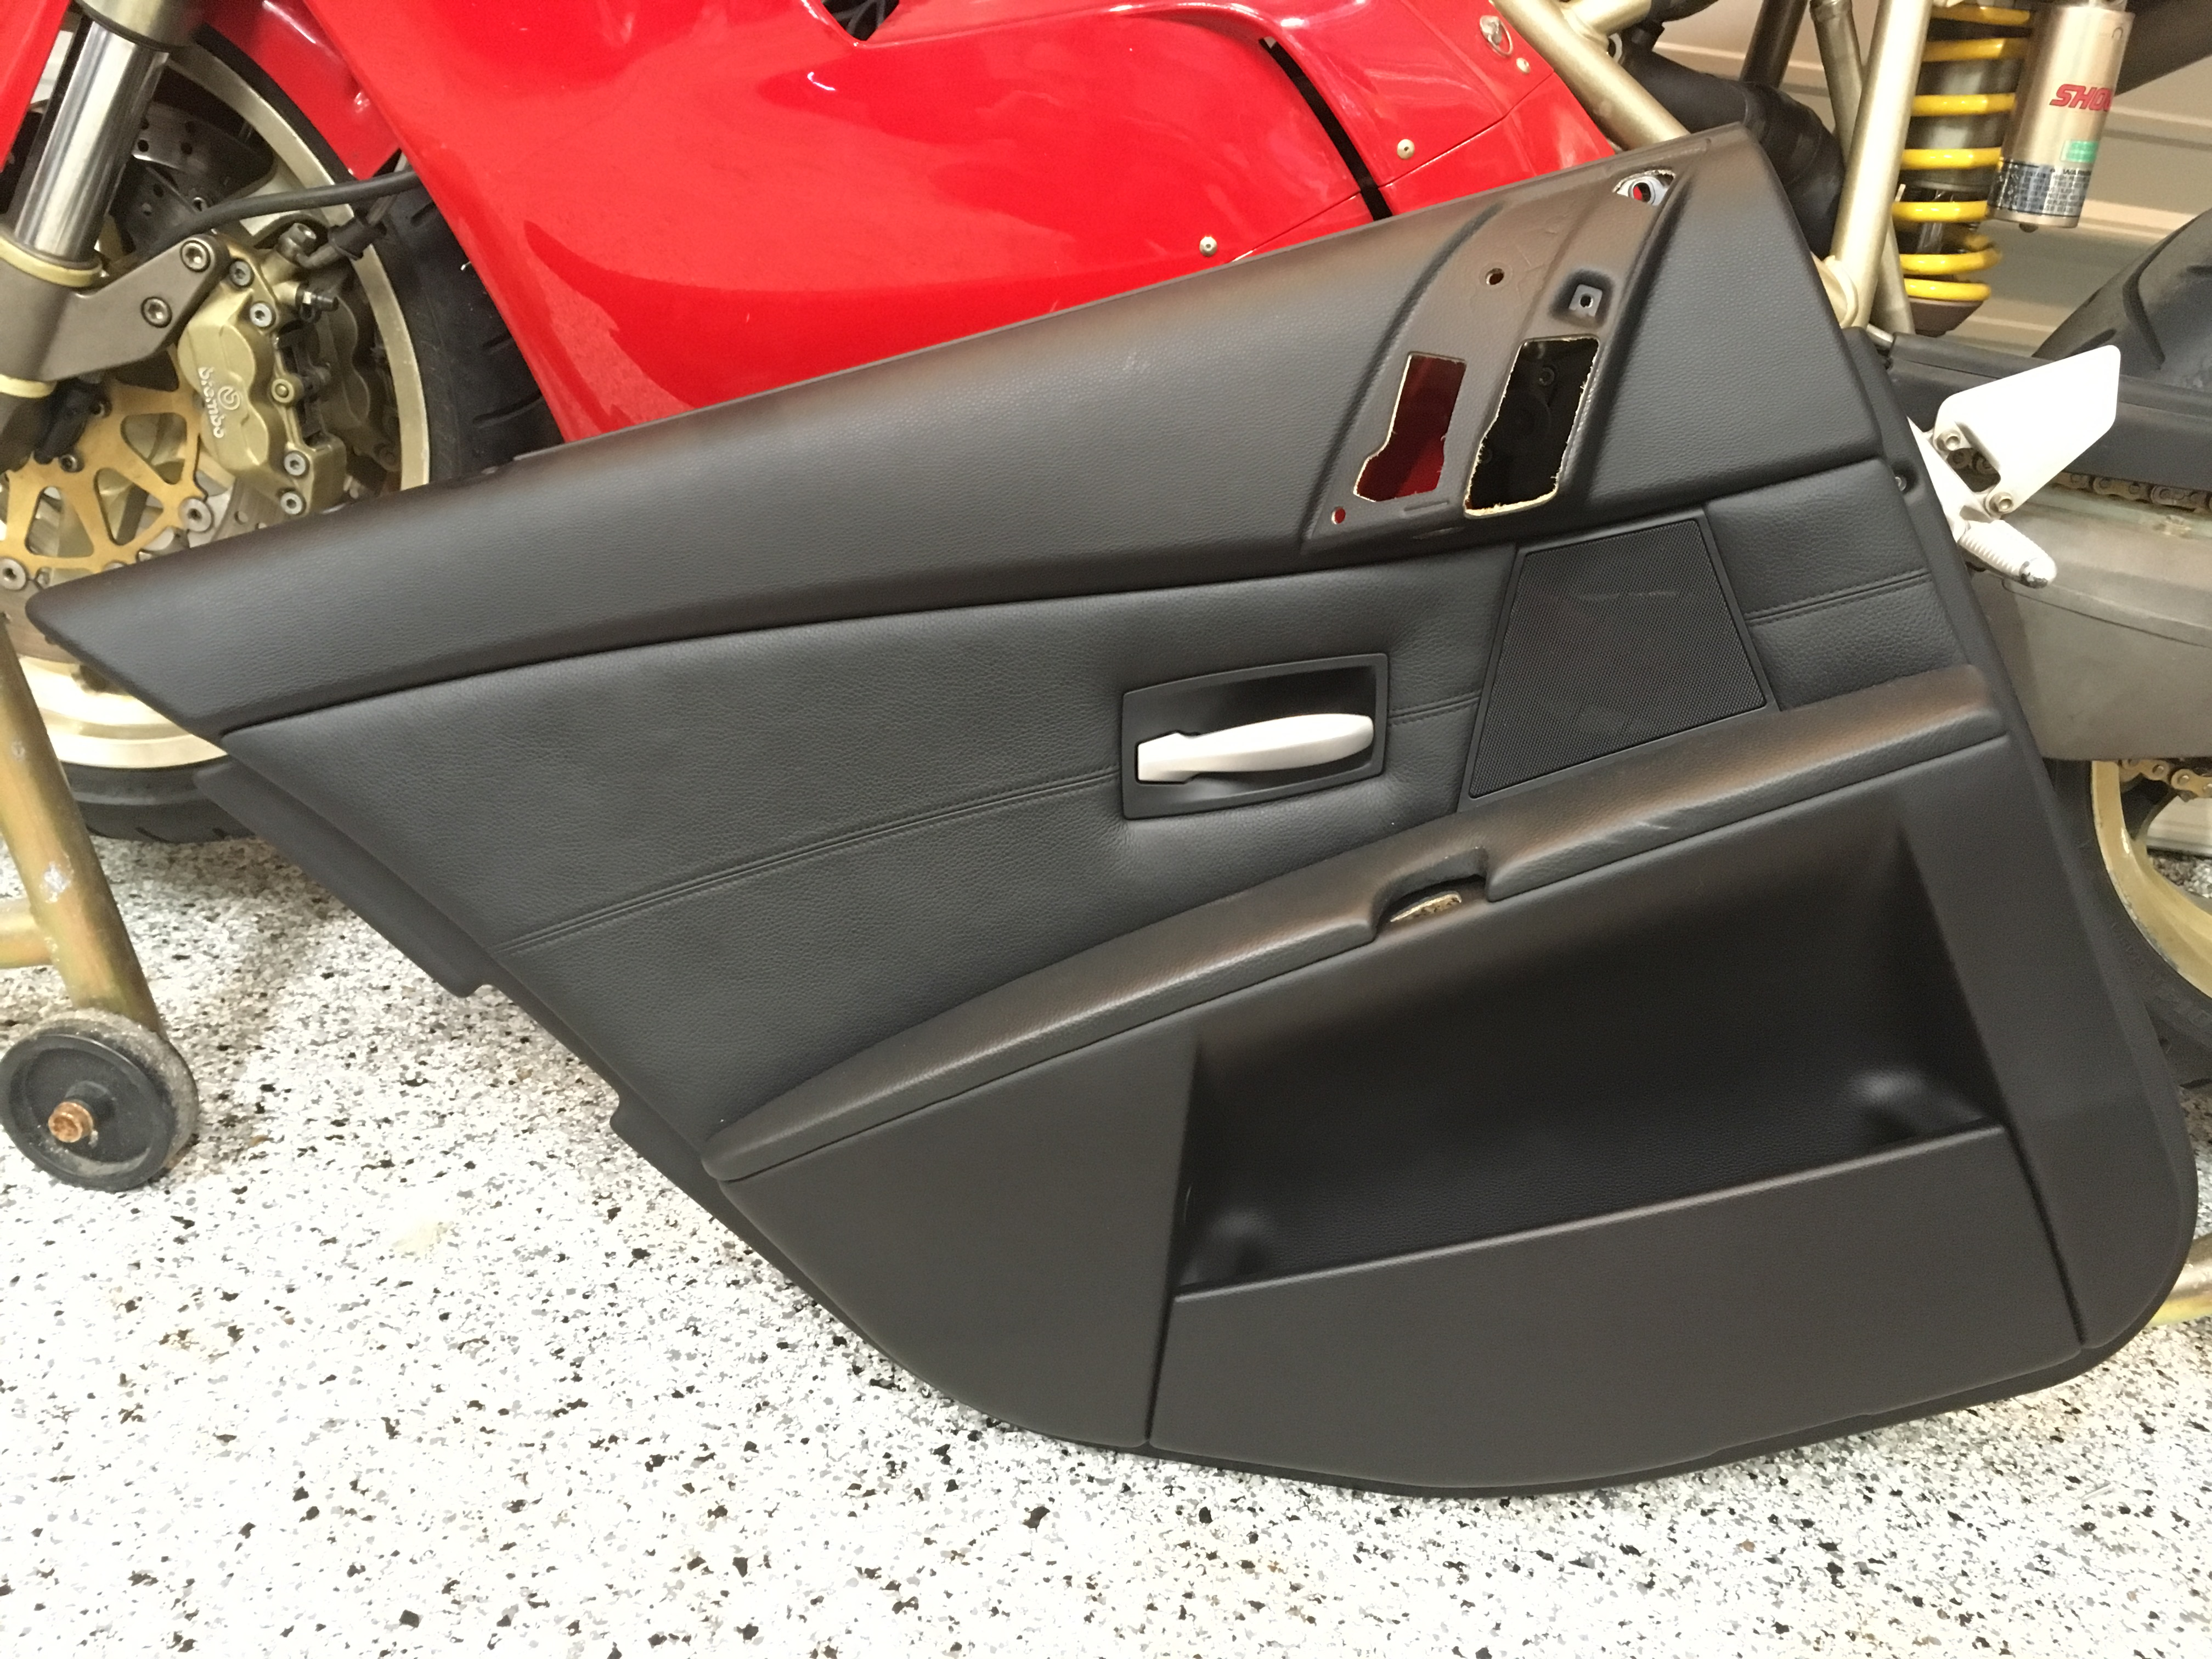 Black M5 door panels with the shade option-2017-01-21-17.17.39.jpg